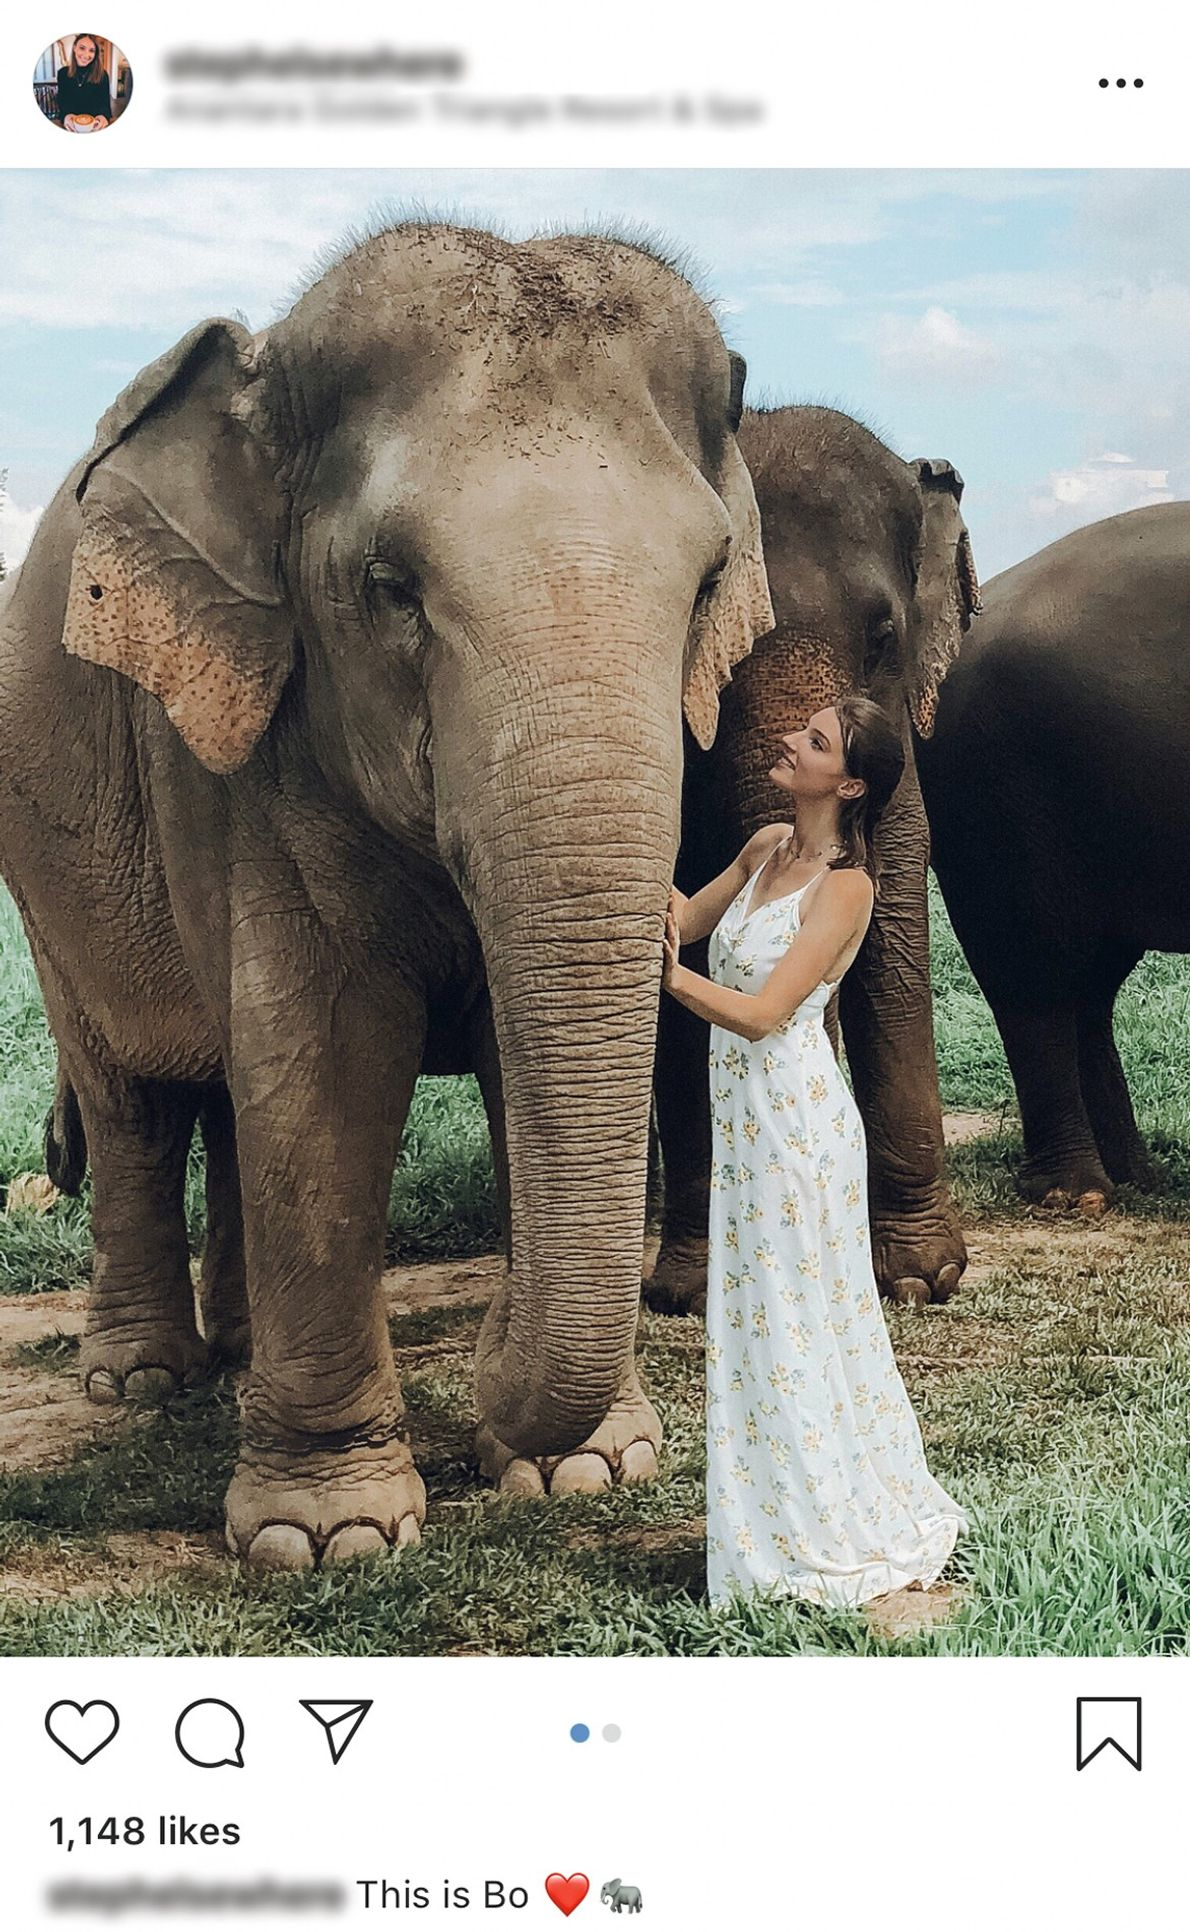 Photos of tourists with captive wild animals abound on social media platforms such as Instagram. With ...